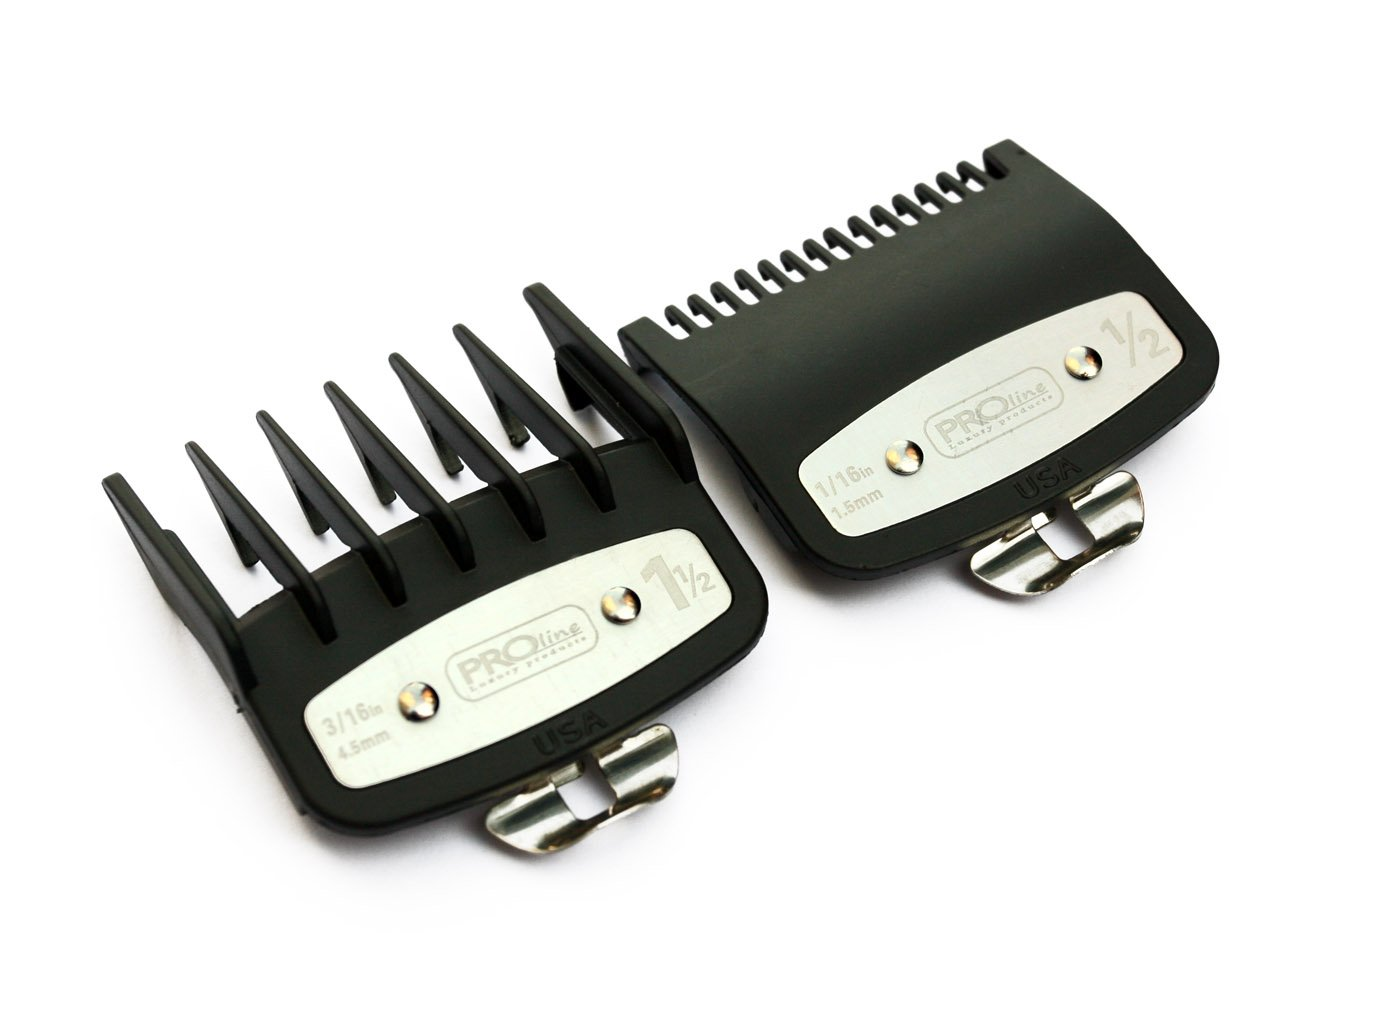 Professional Line Attachment Comb set With Metal Fitting Cutting Guide 1/2 1.5mm - 1 1/2 4.5mm Fit - Super Taper, Chromepro, Balding, Magic 5 Star and other standard full sized clippers